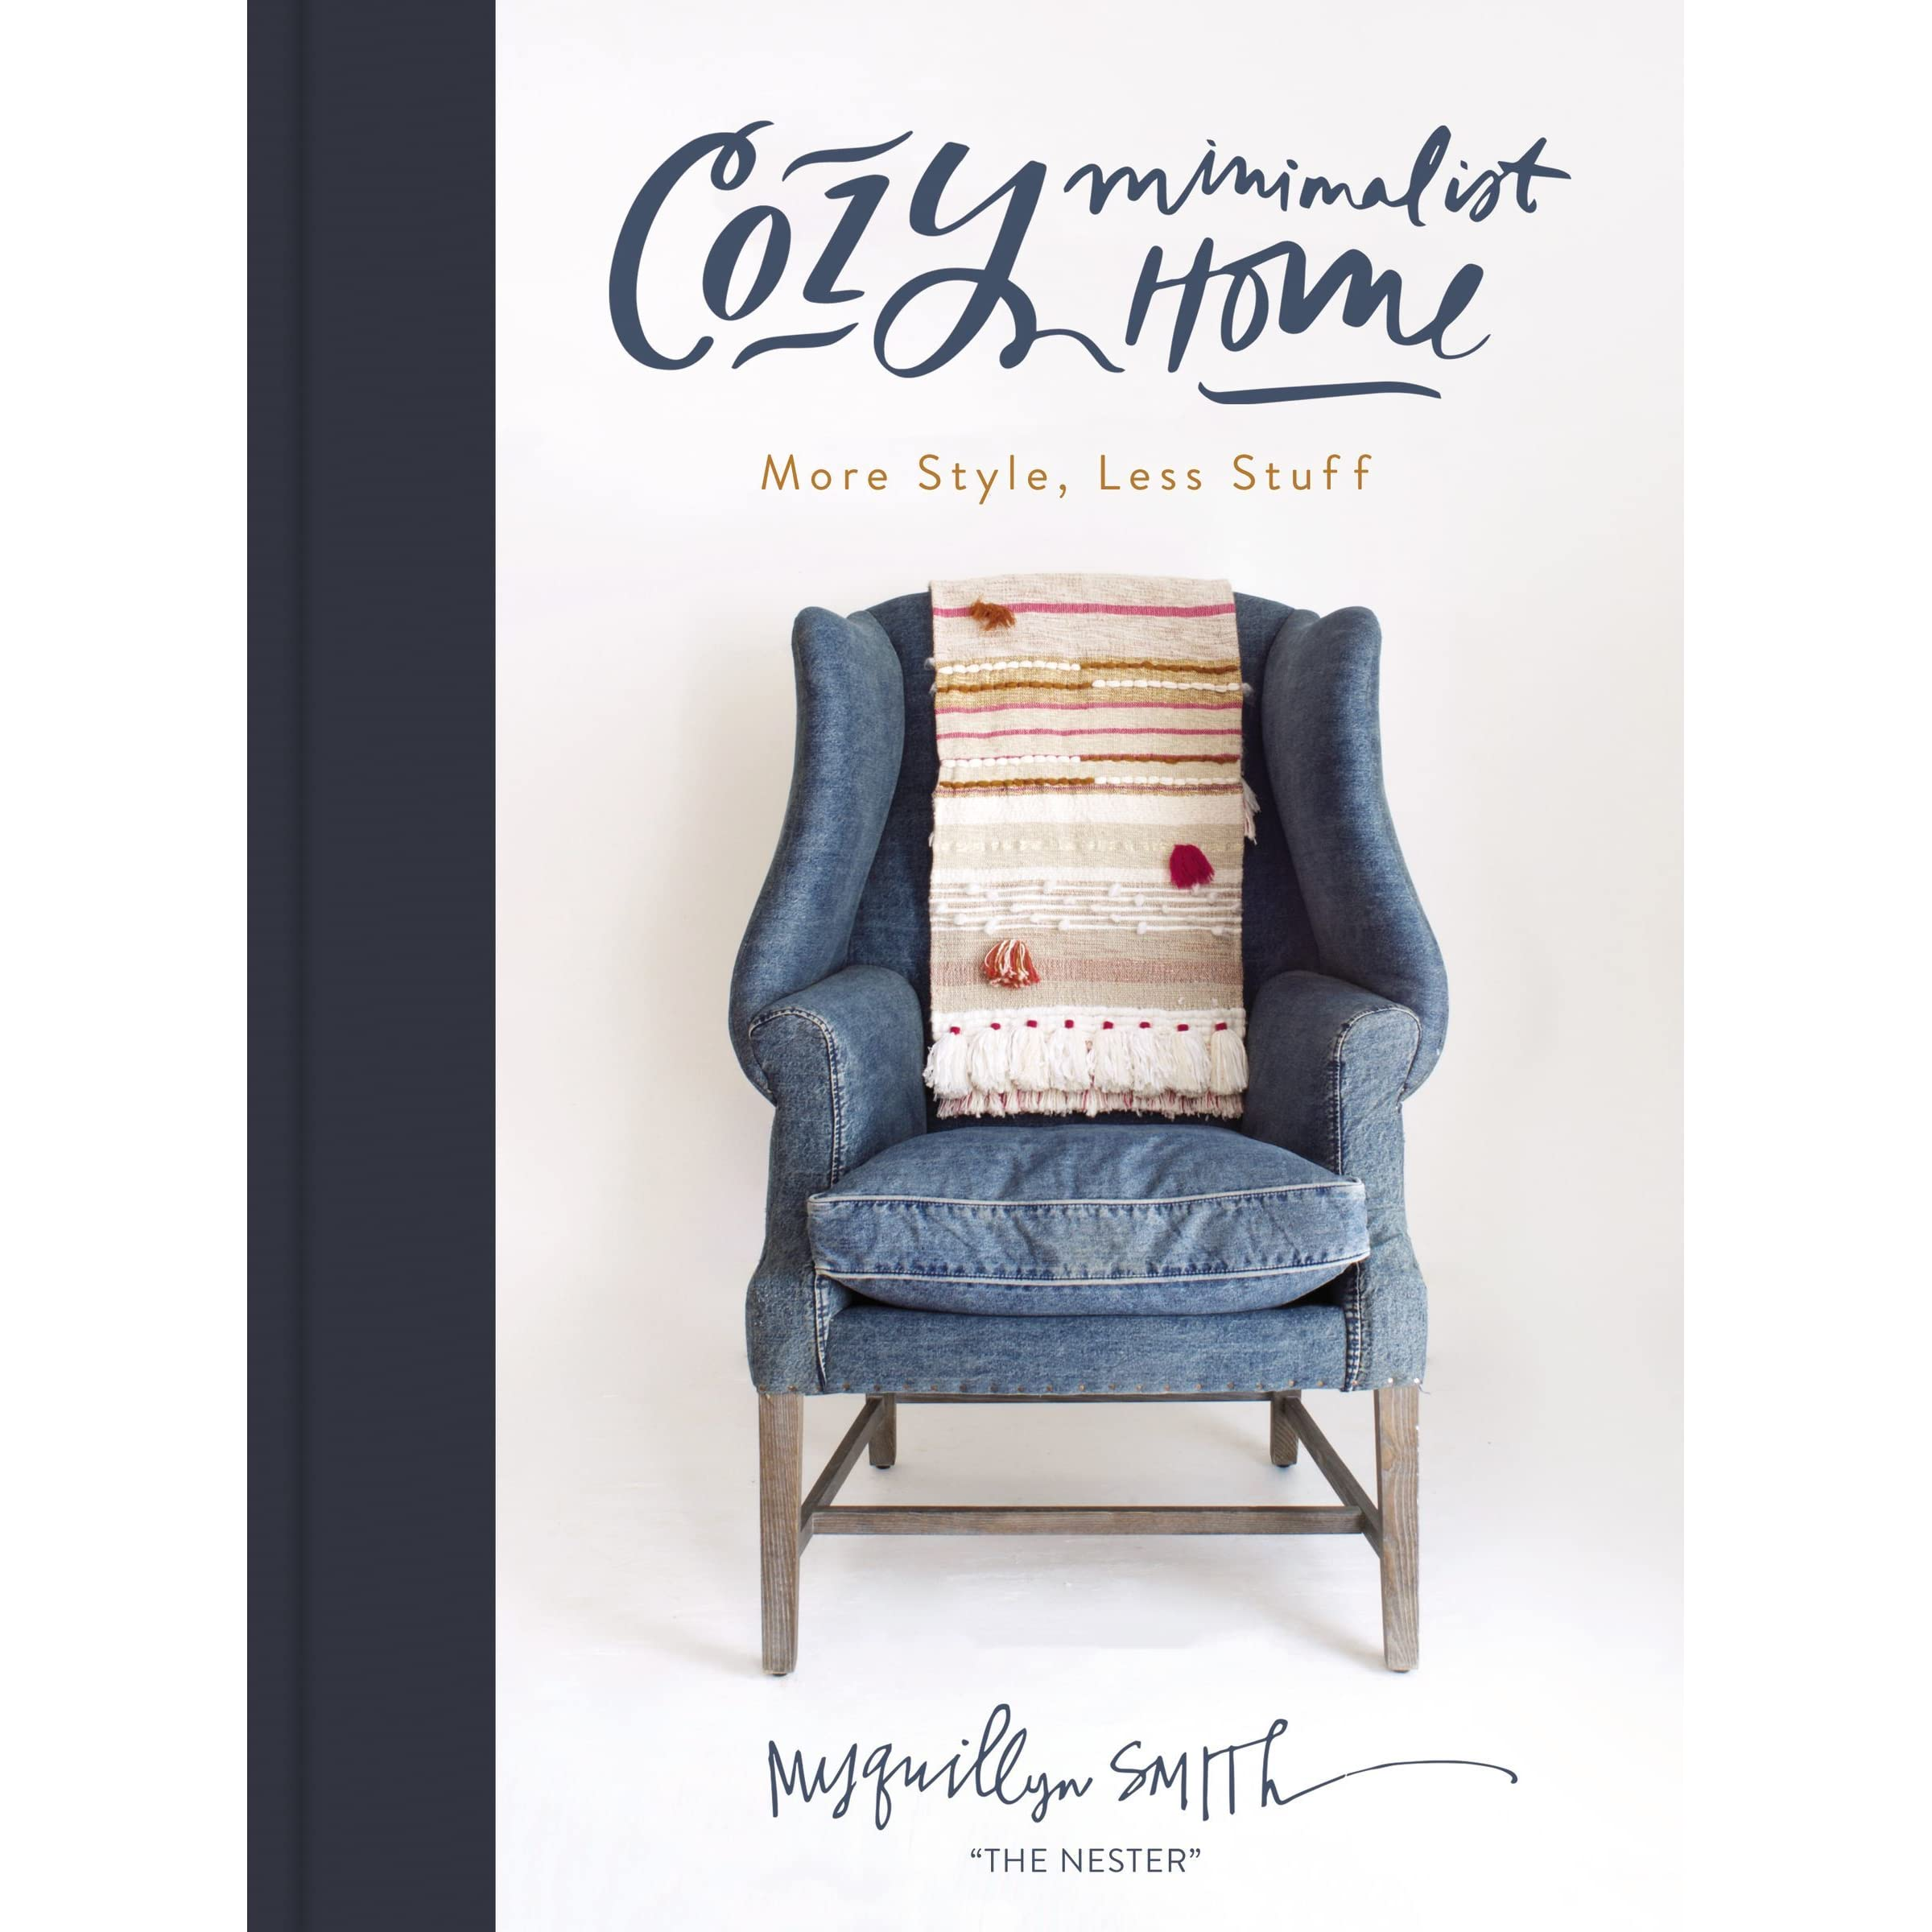 Laura Austin's review of Cozy Minimalist Home: More Style